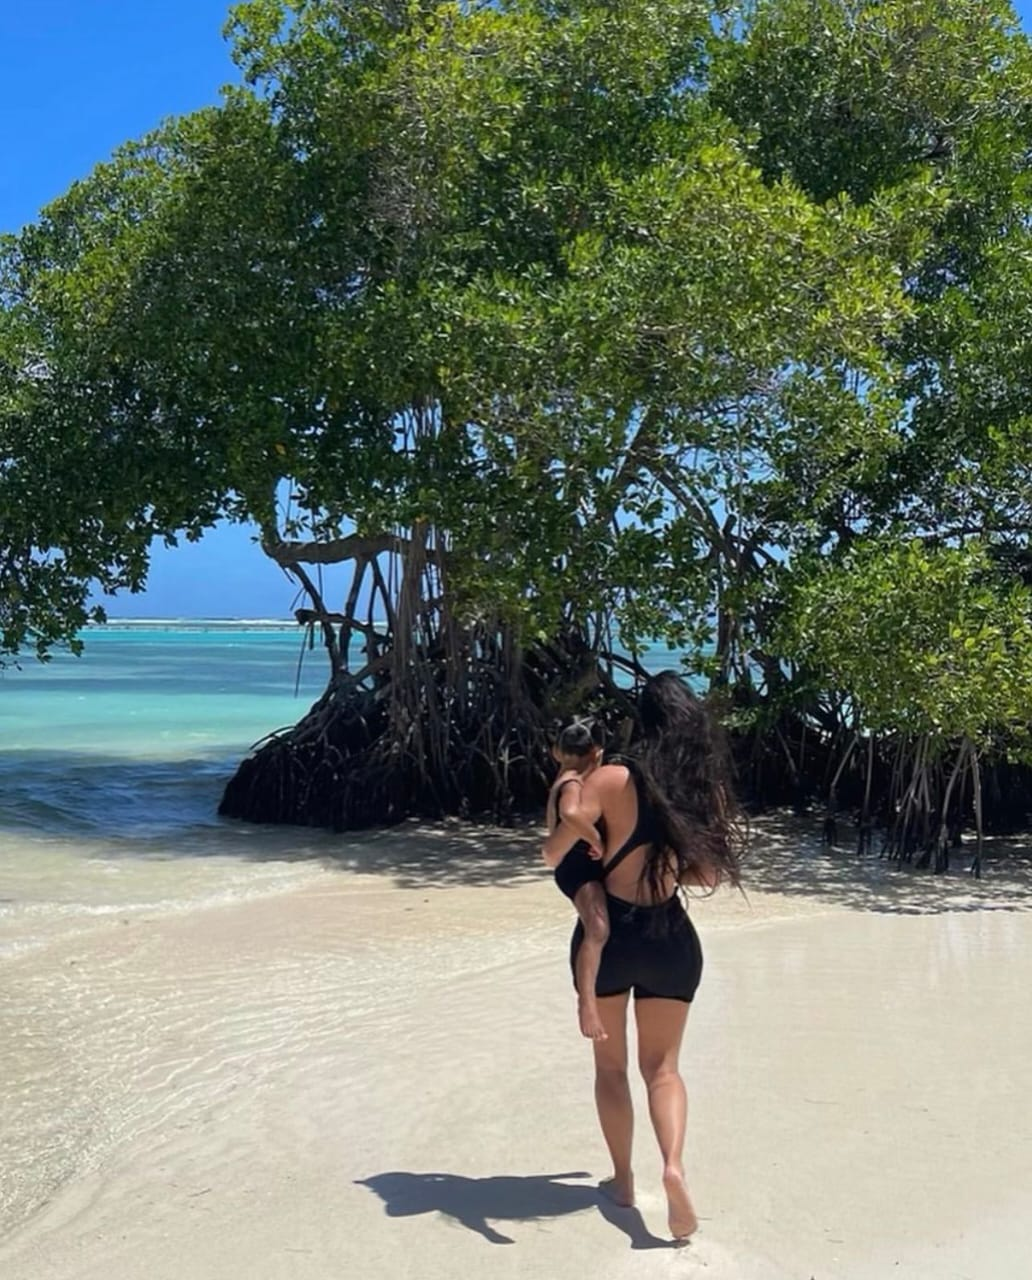 Kim Kadashian shared a beautiful picture of herself and daughter in beach